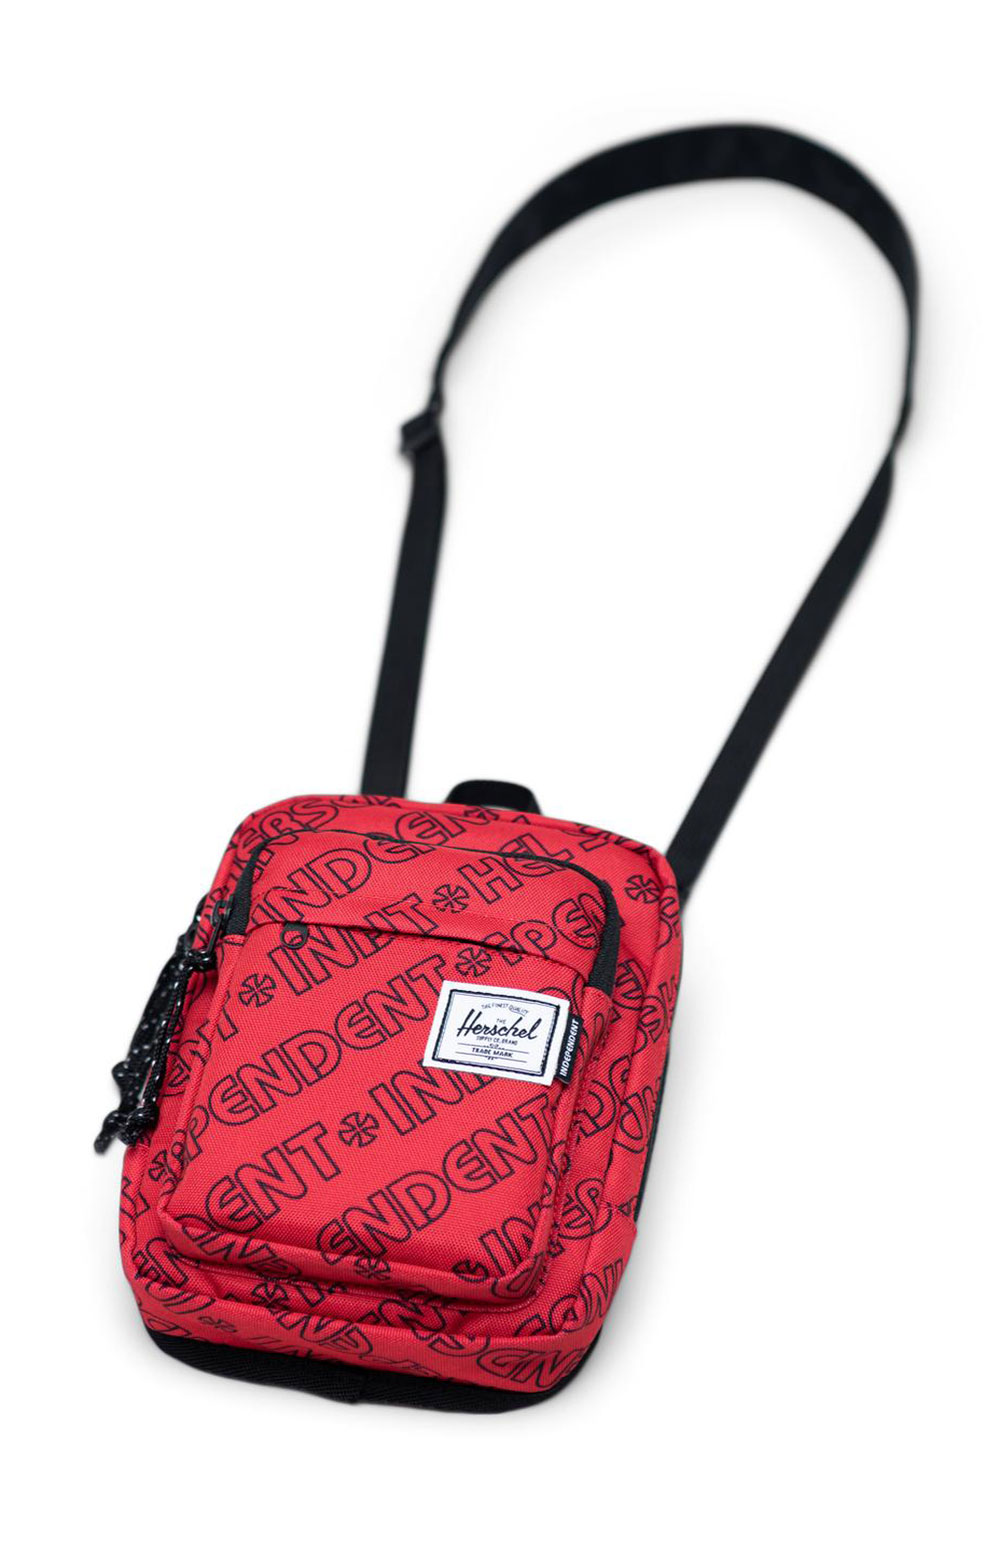 Form L Crossbody Bag - Independent Unified Red 2